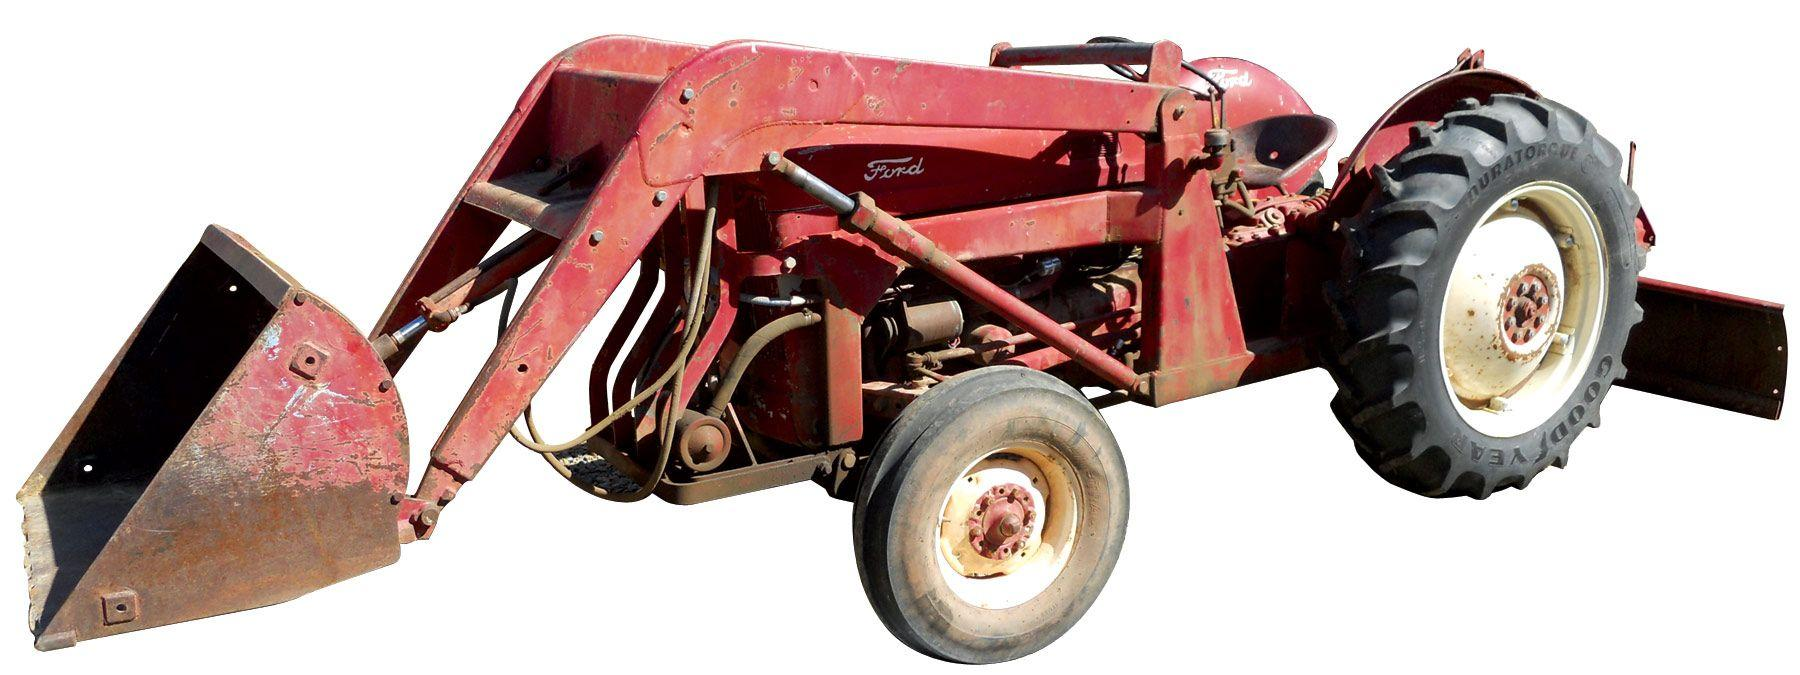 small resolution of image 1 tractor ford jubilee w front end loader rear blade attachment